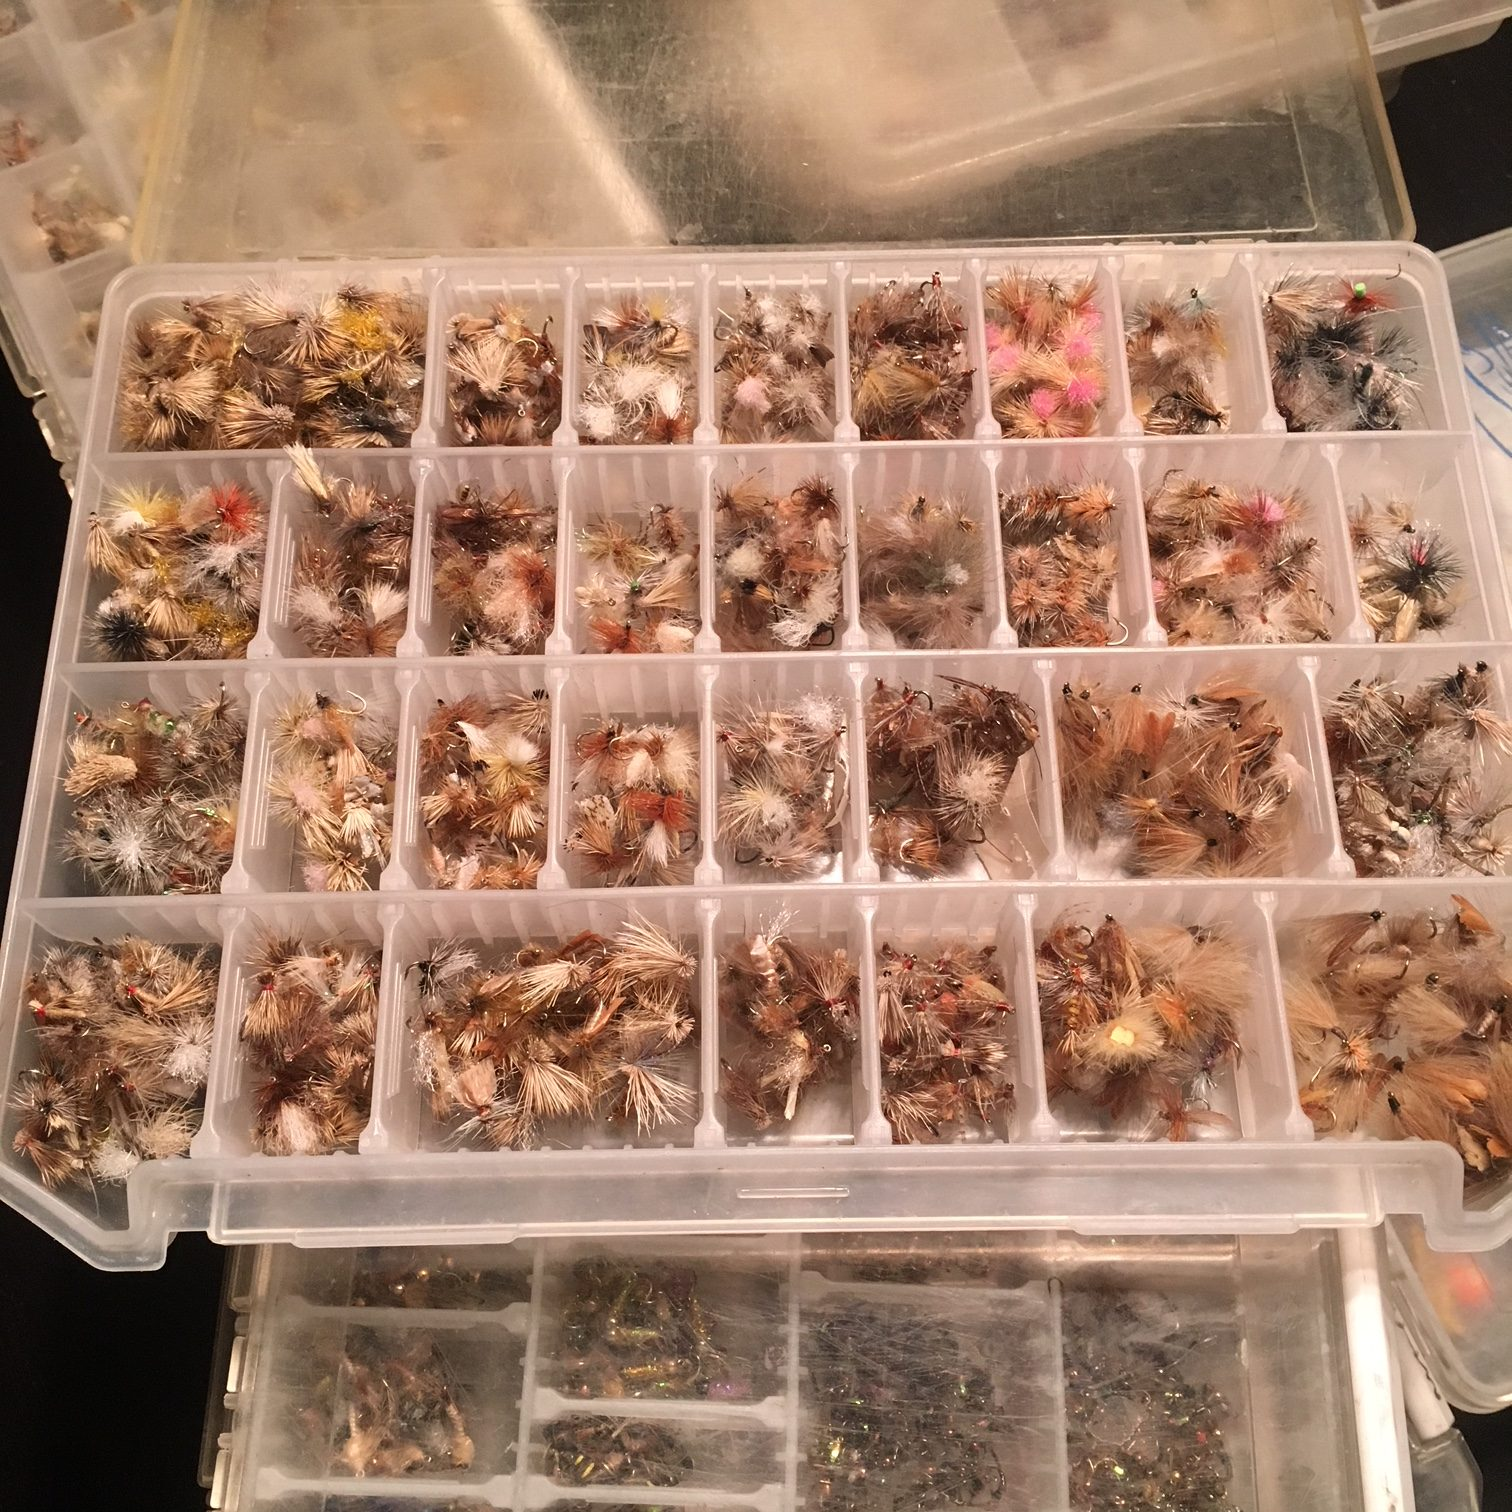 Since my brain is fried, I may as well organize flies.